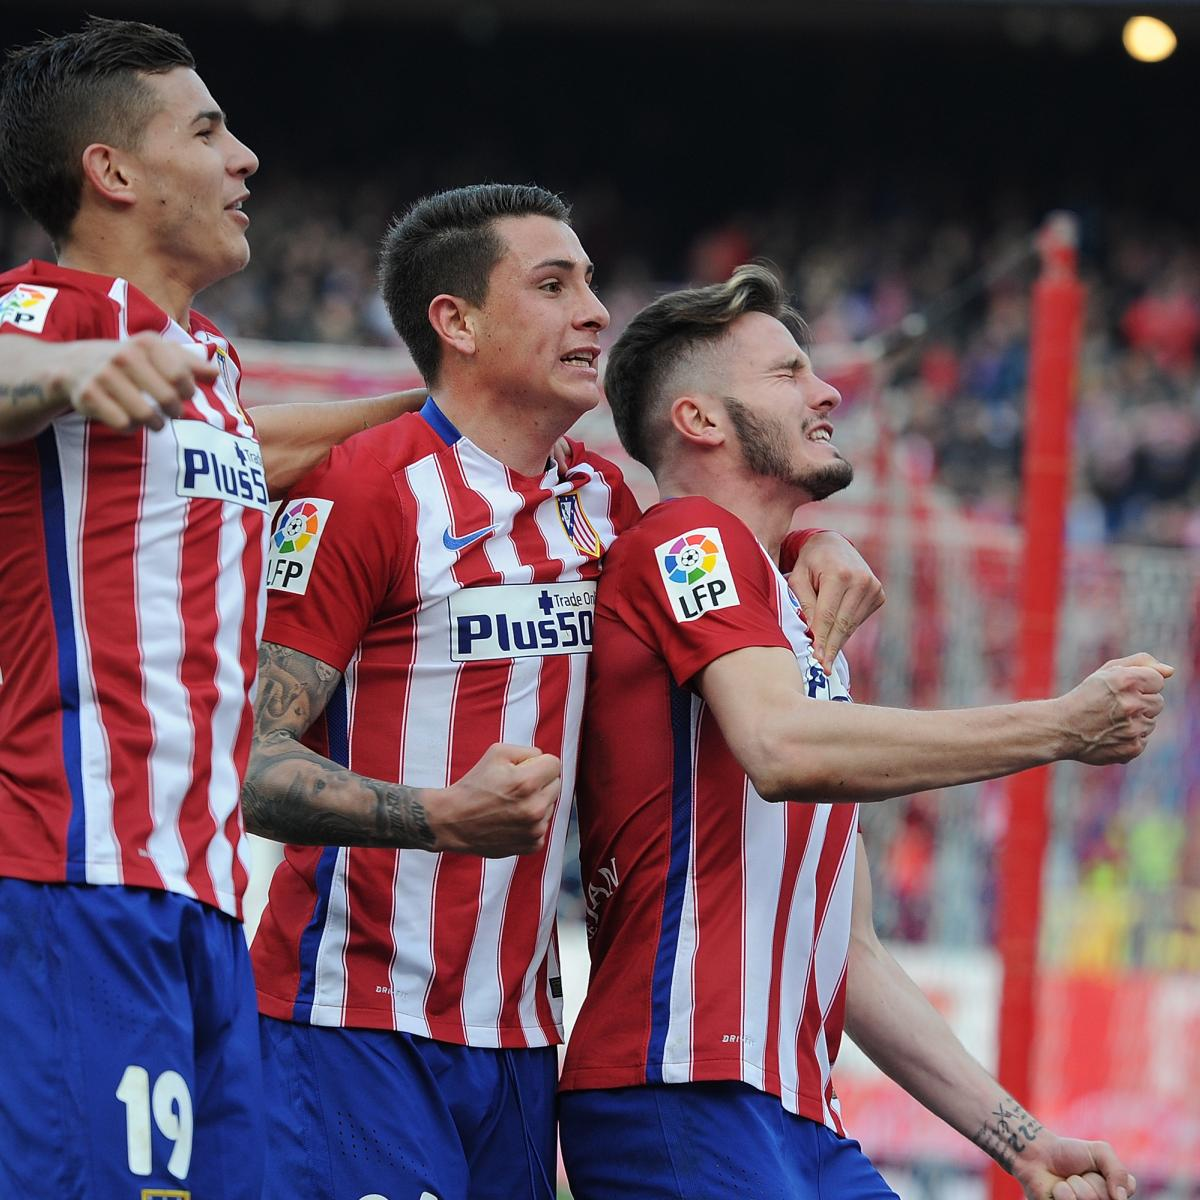 La liga results 2016 week 23 final scores and updated - La liga latest results and table ...